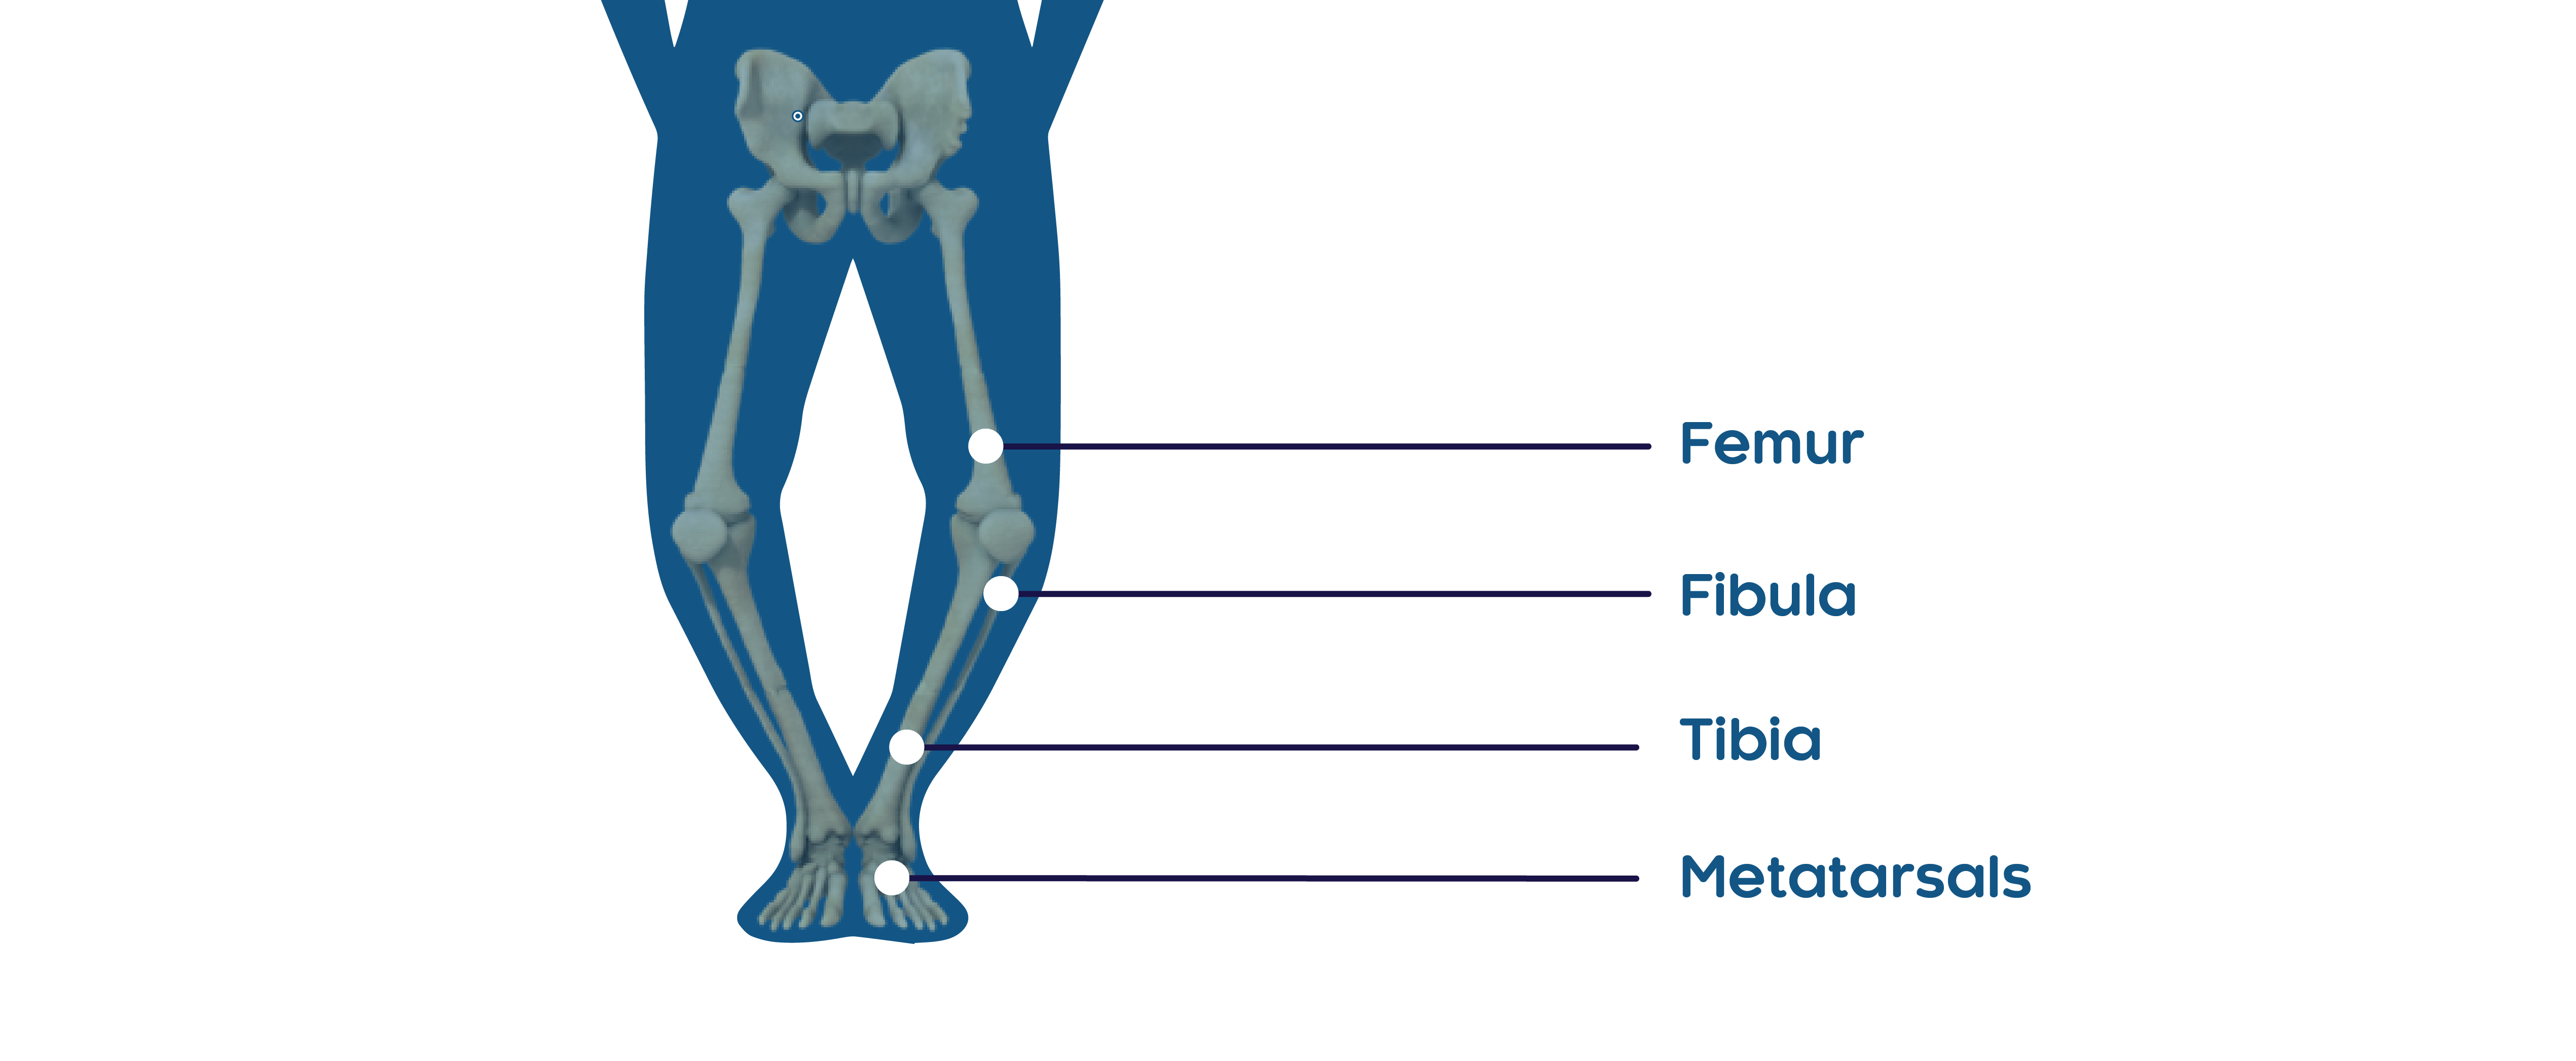 In Study 3, fractures were predominantly located in the femur, tibia/fibula, and metatarsals